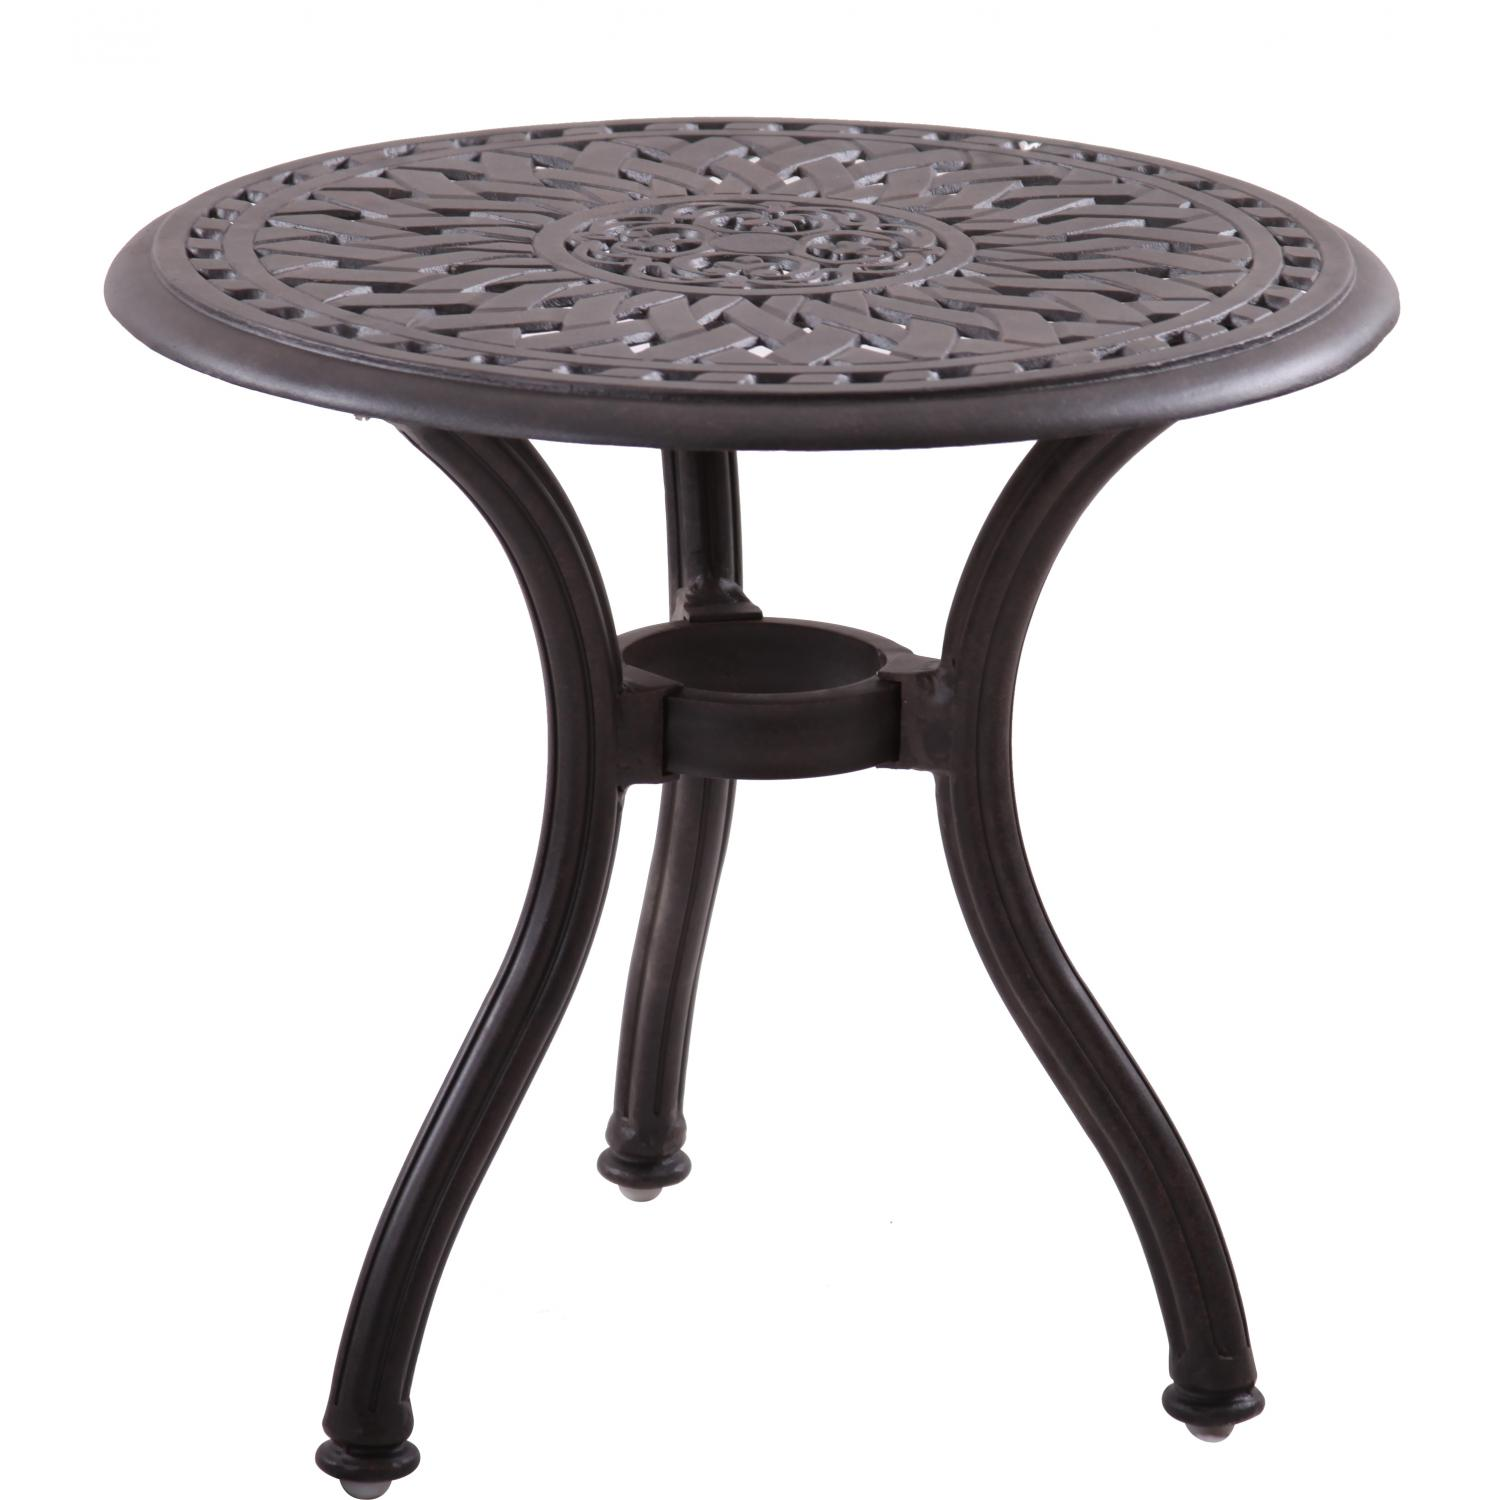 darlee series cast aluminum round patio end table antique outdoor side for bbq bronze guys barn door kitchen cabinets drop leaf dinette sets iron tables with glass tops decoration